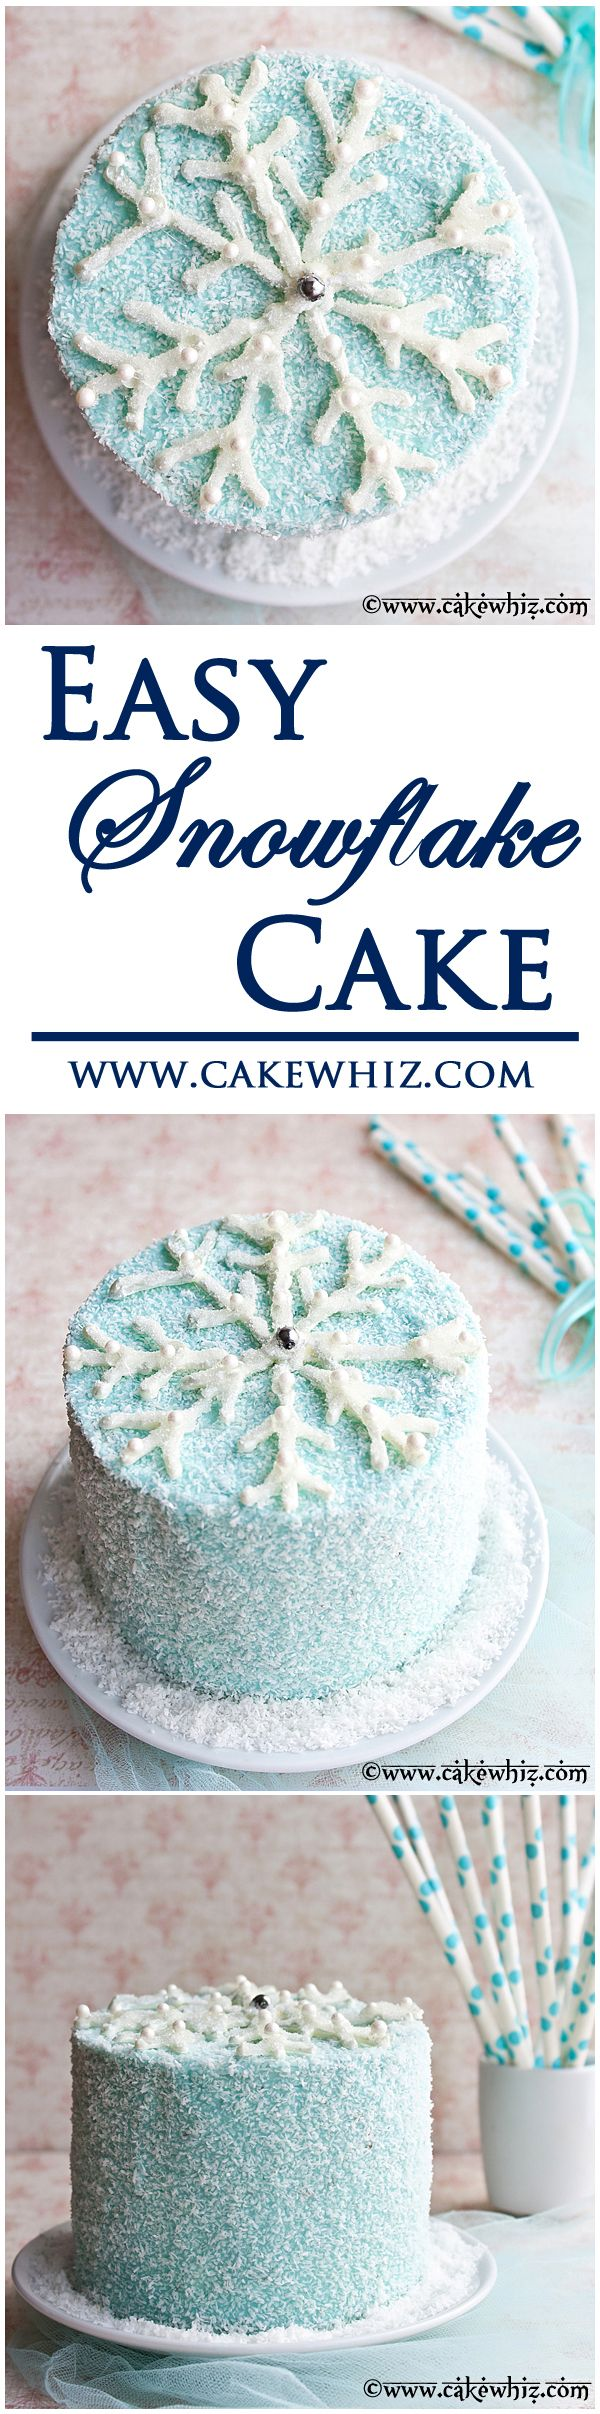 Stunning WINTER CAKE, topped off with a sparkly chocolate SNOWFLAKE plus there is a video tutorial so you can easily make one too. From cakewhiz.com